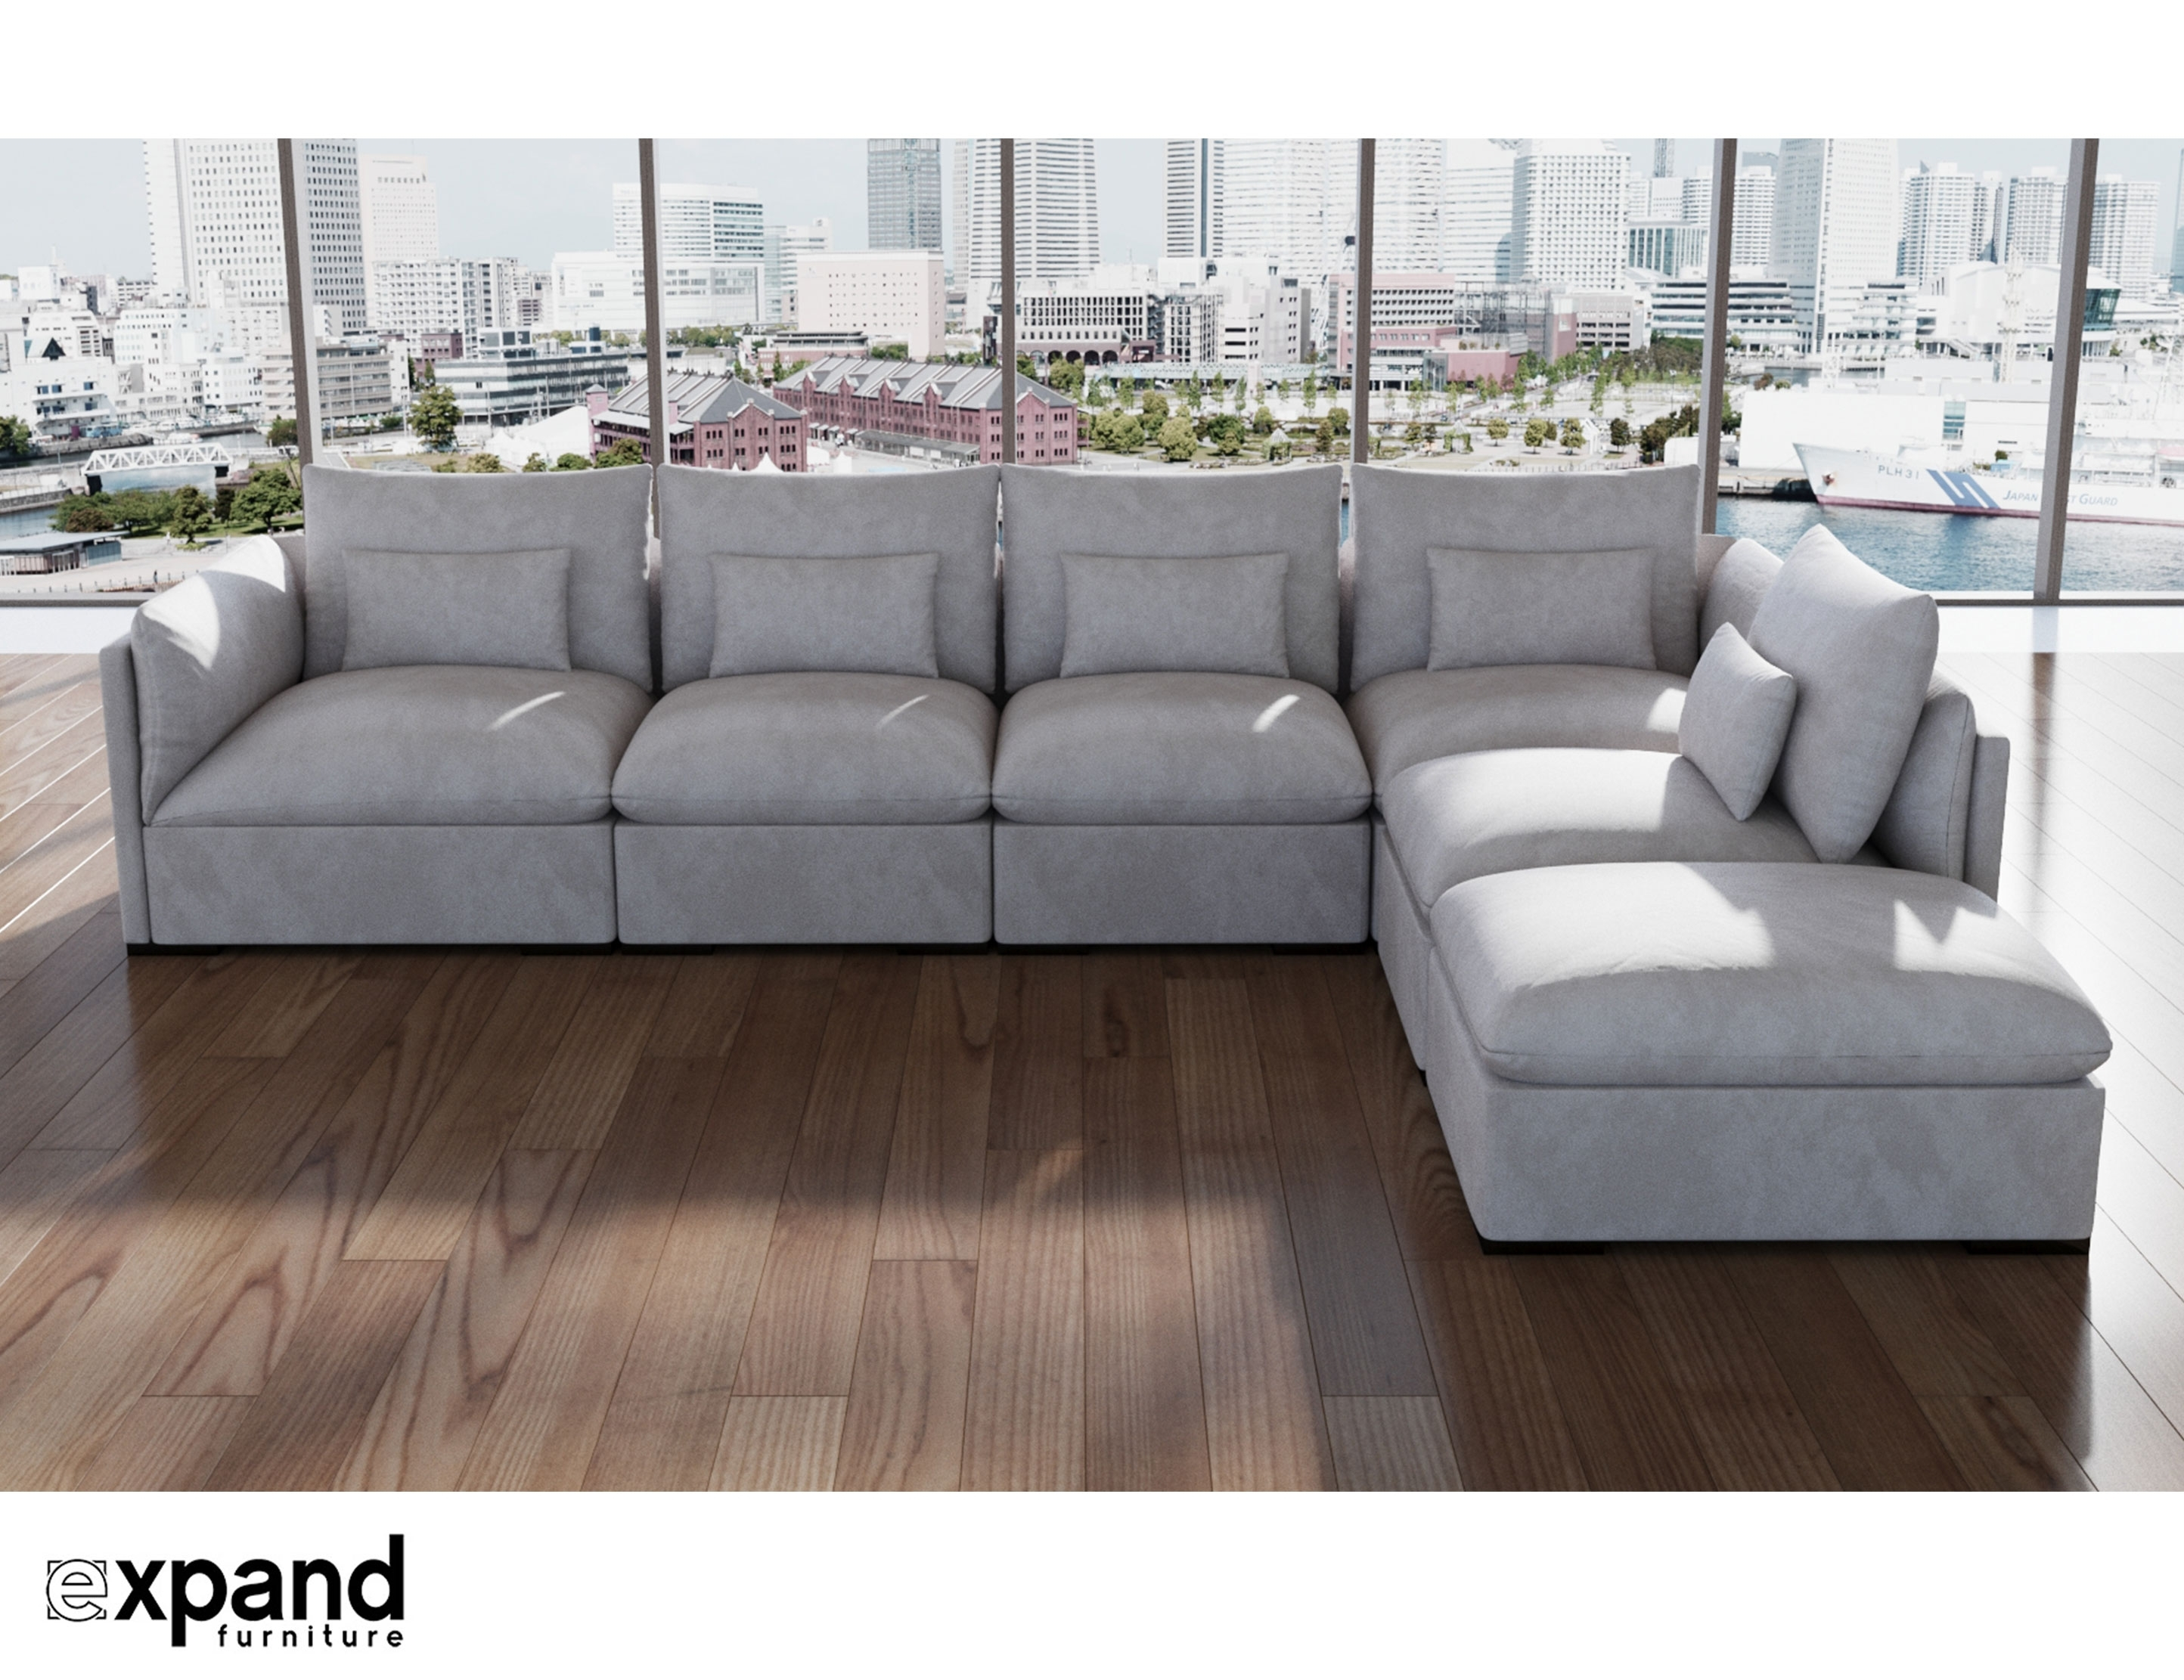 Adagio: Luxury Sectional Modular Sofa Set Of 4 | Expand Furniture Intended For Down Feather Sectional Sofas (Image 1 of 10)